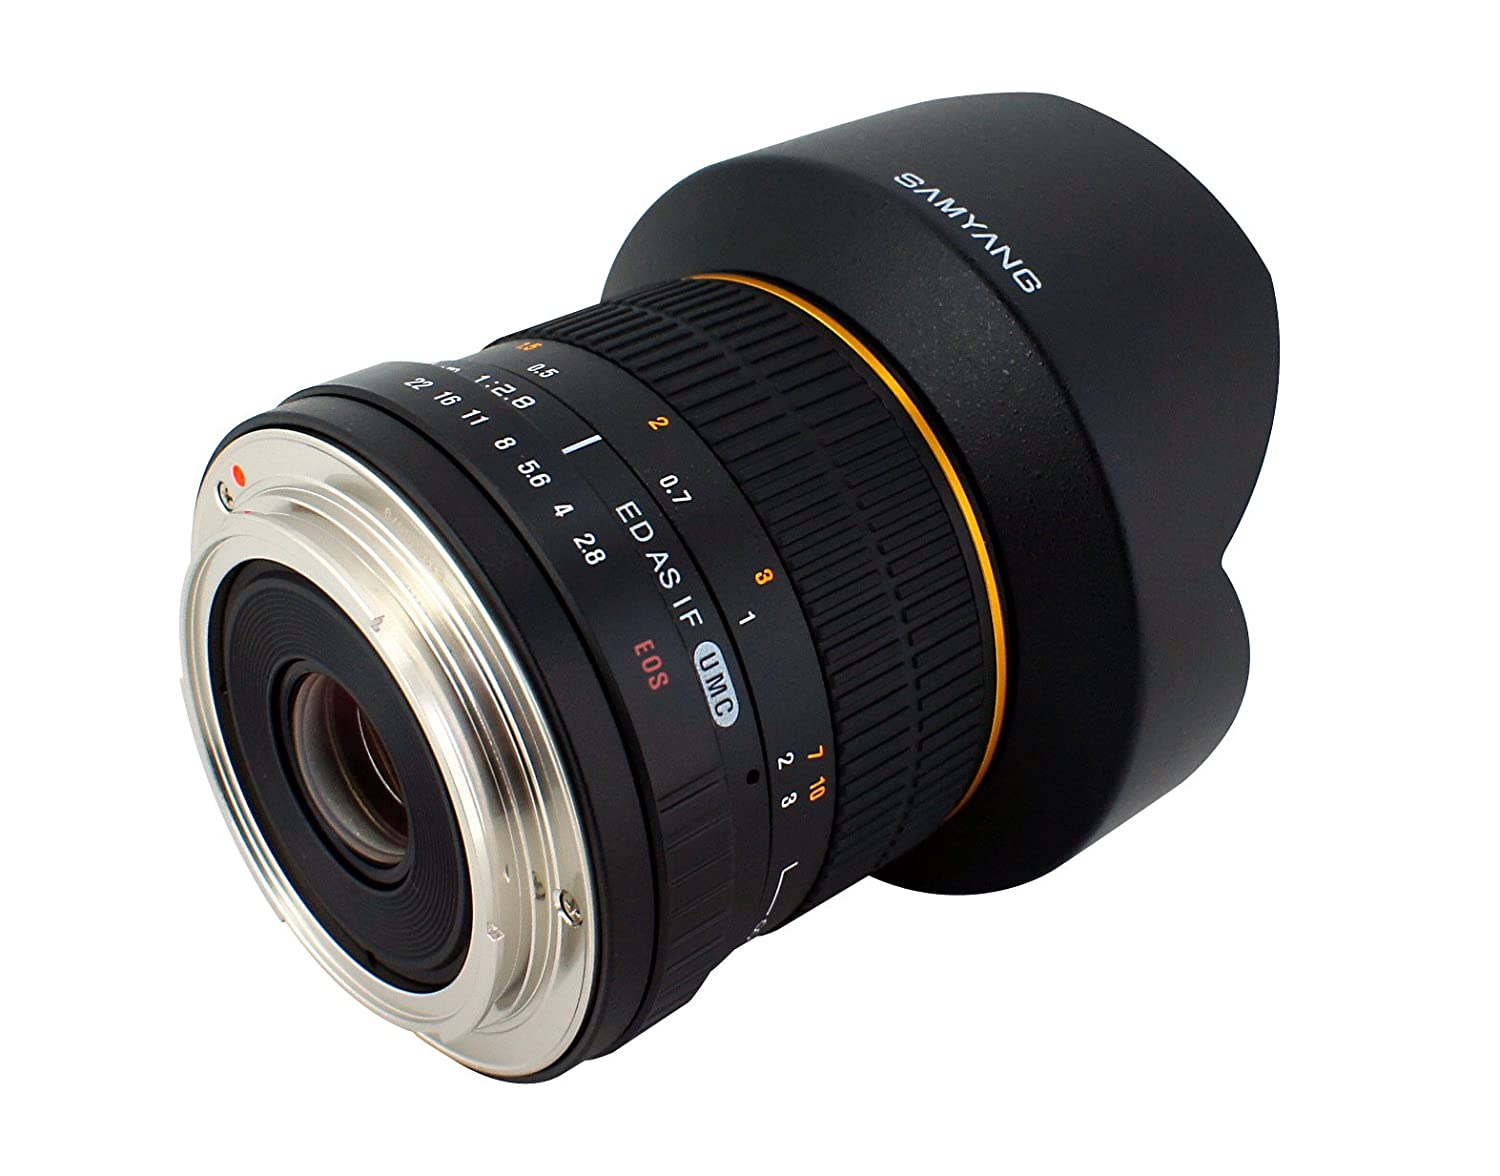 Samyang SY14M-C 14mm F2.8 Ultra Wide Fixed Angle Lens for Canon